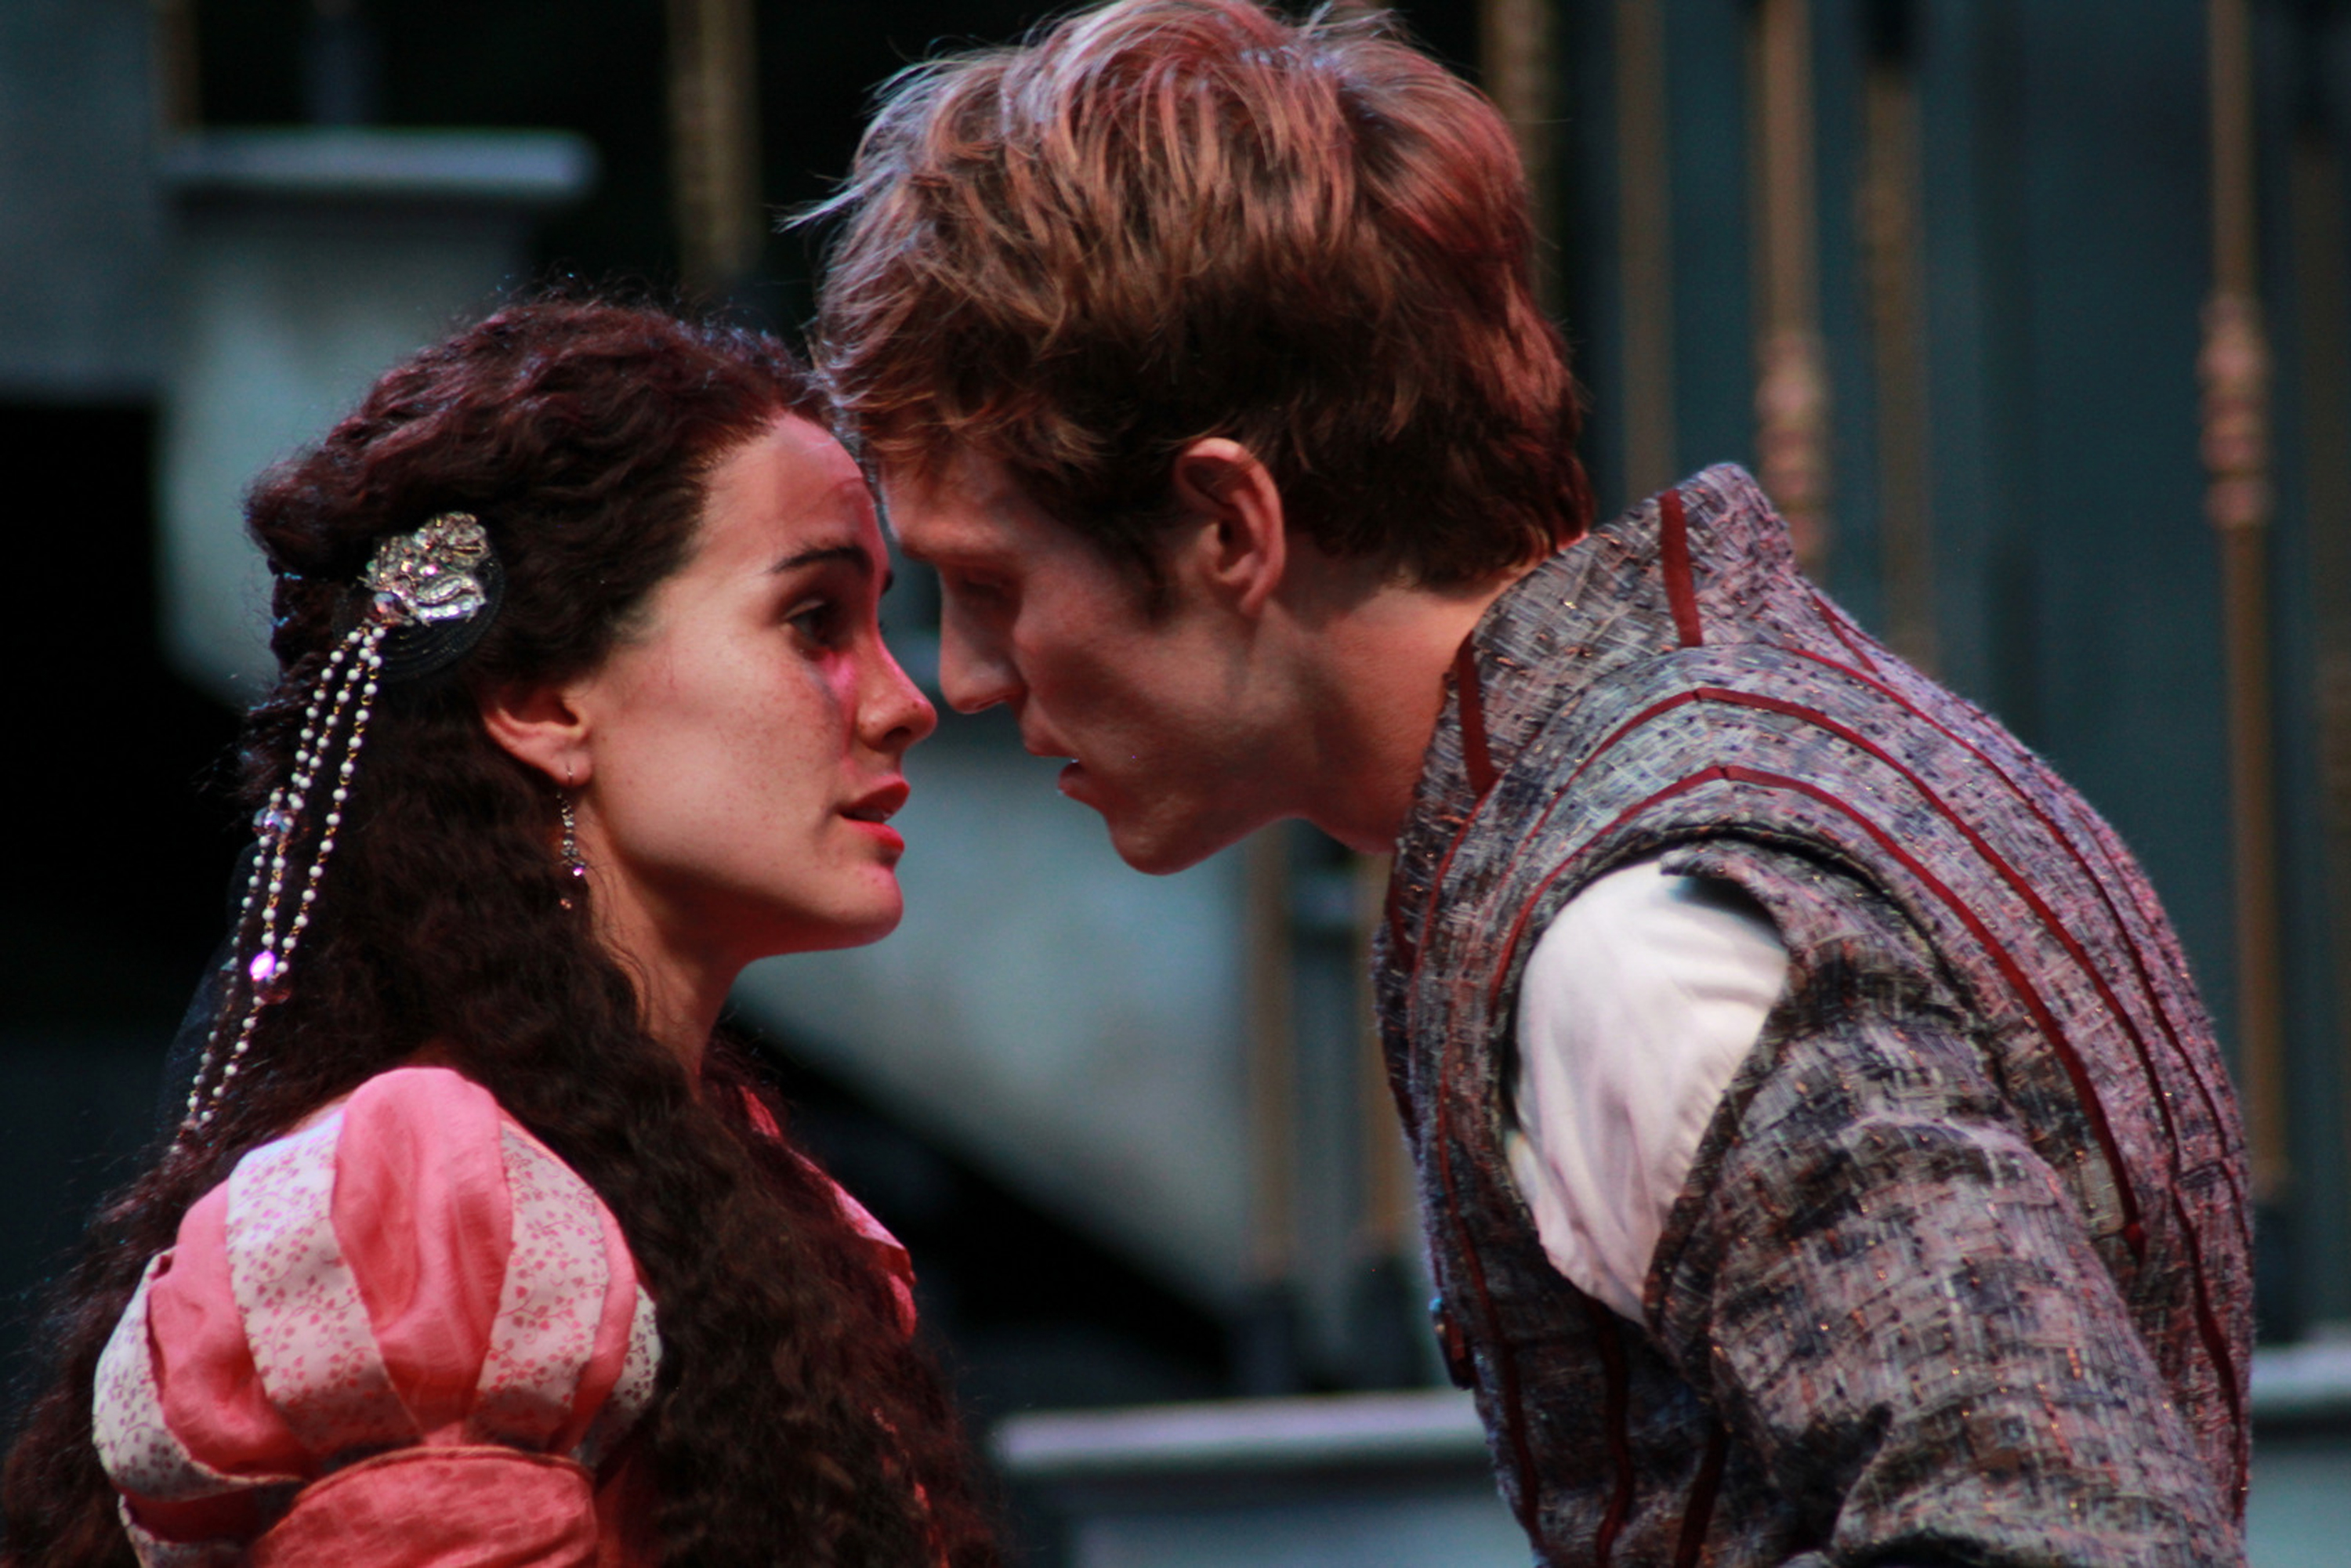 Melisa Pereyra and Christopher Sheard in Romeo and Juliet, 2014. Photo: Carissa Dixon.